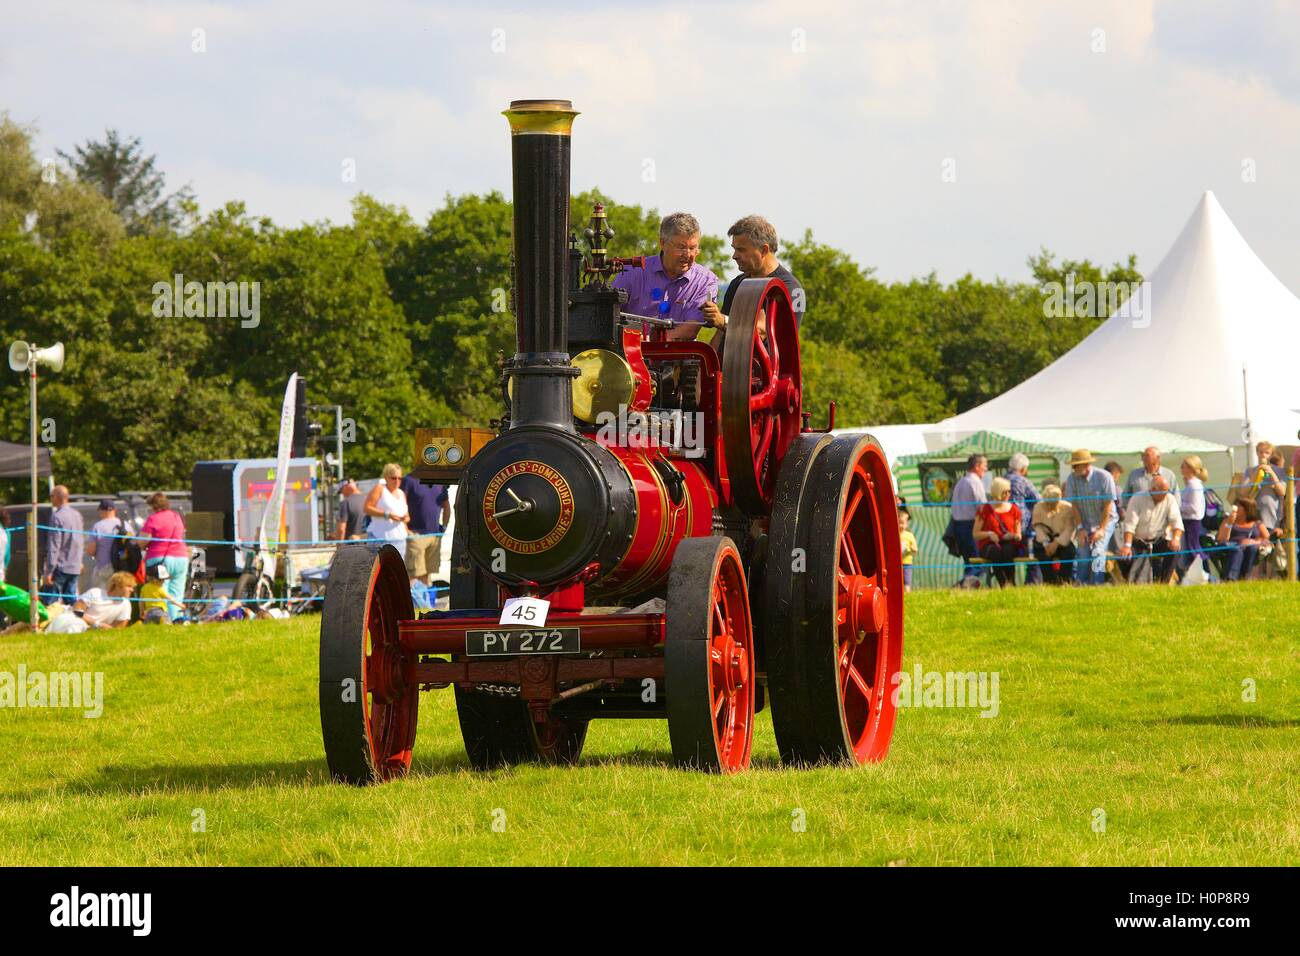 Marshalls' Compound Traction Engine. Bellingham Show and Country Festival, Bellingham, Northumberland, England, - Stock Image